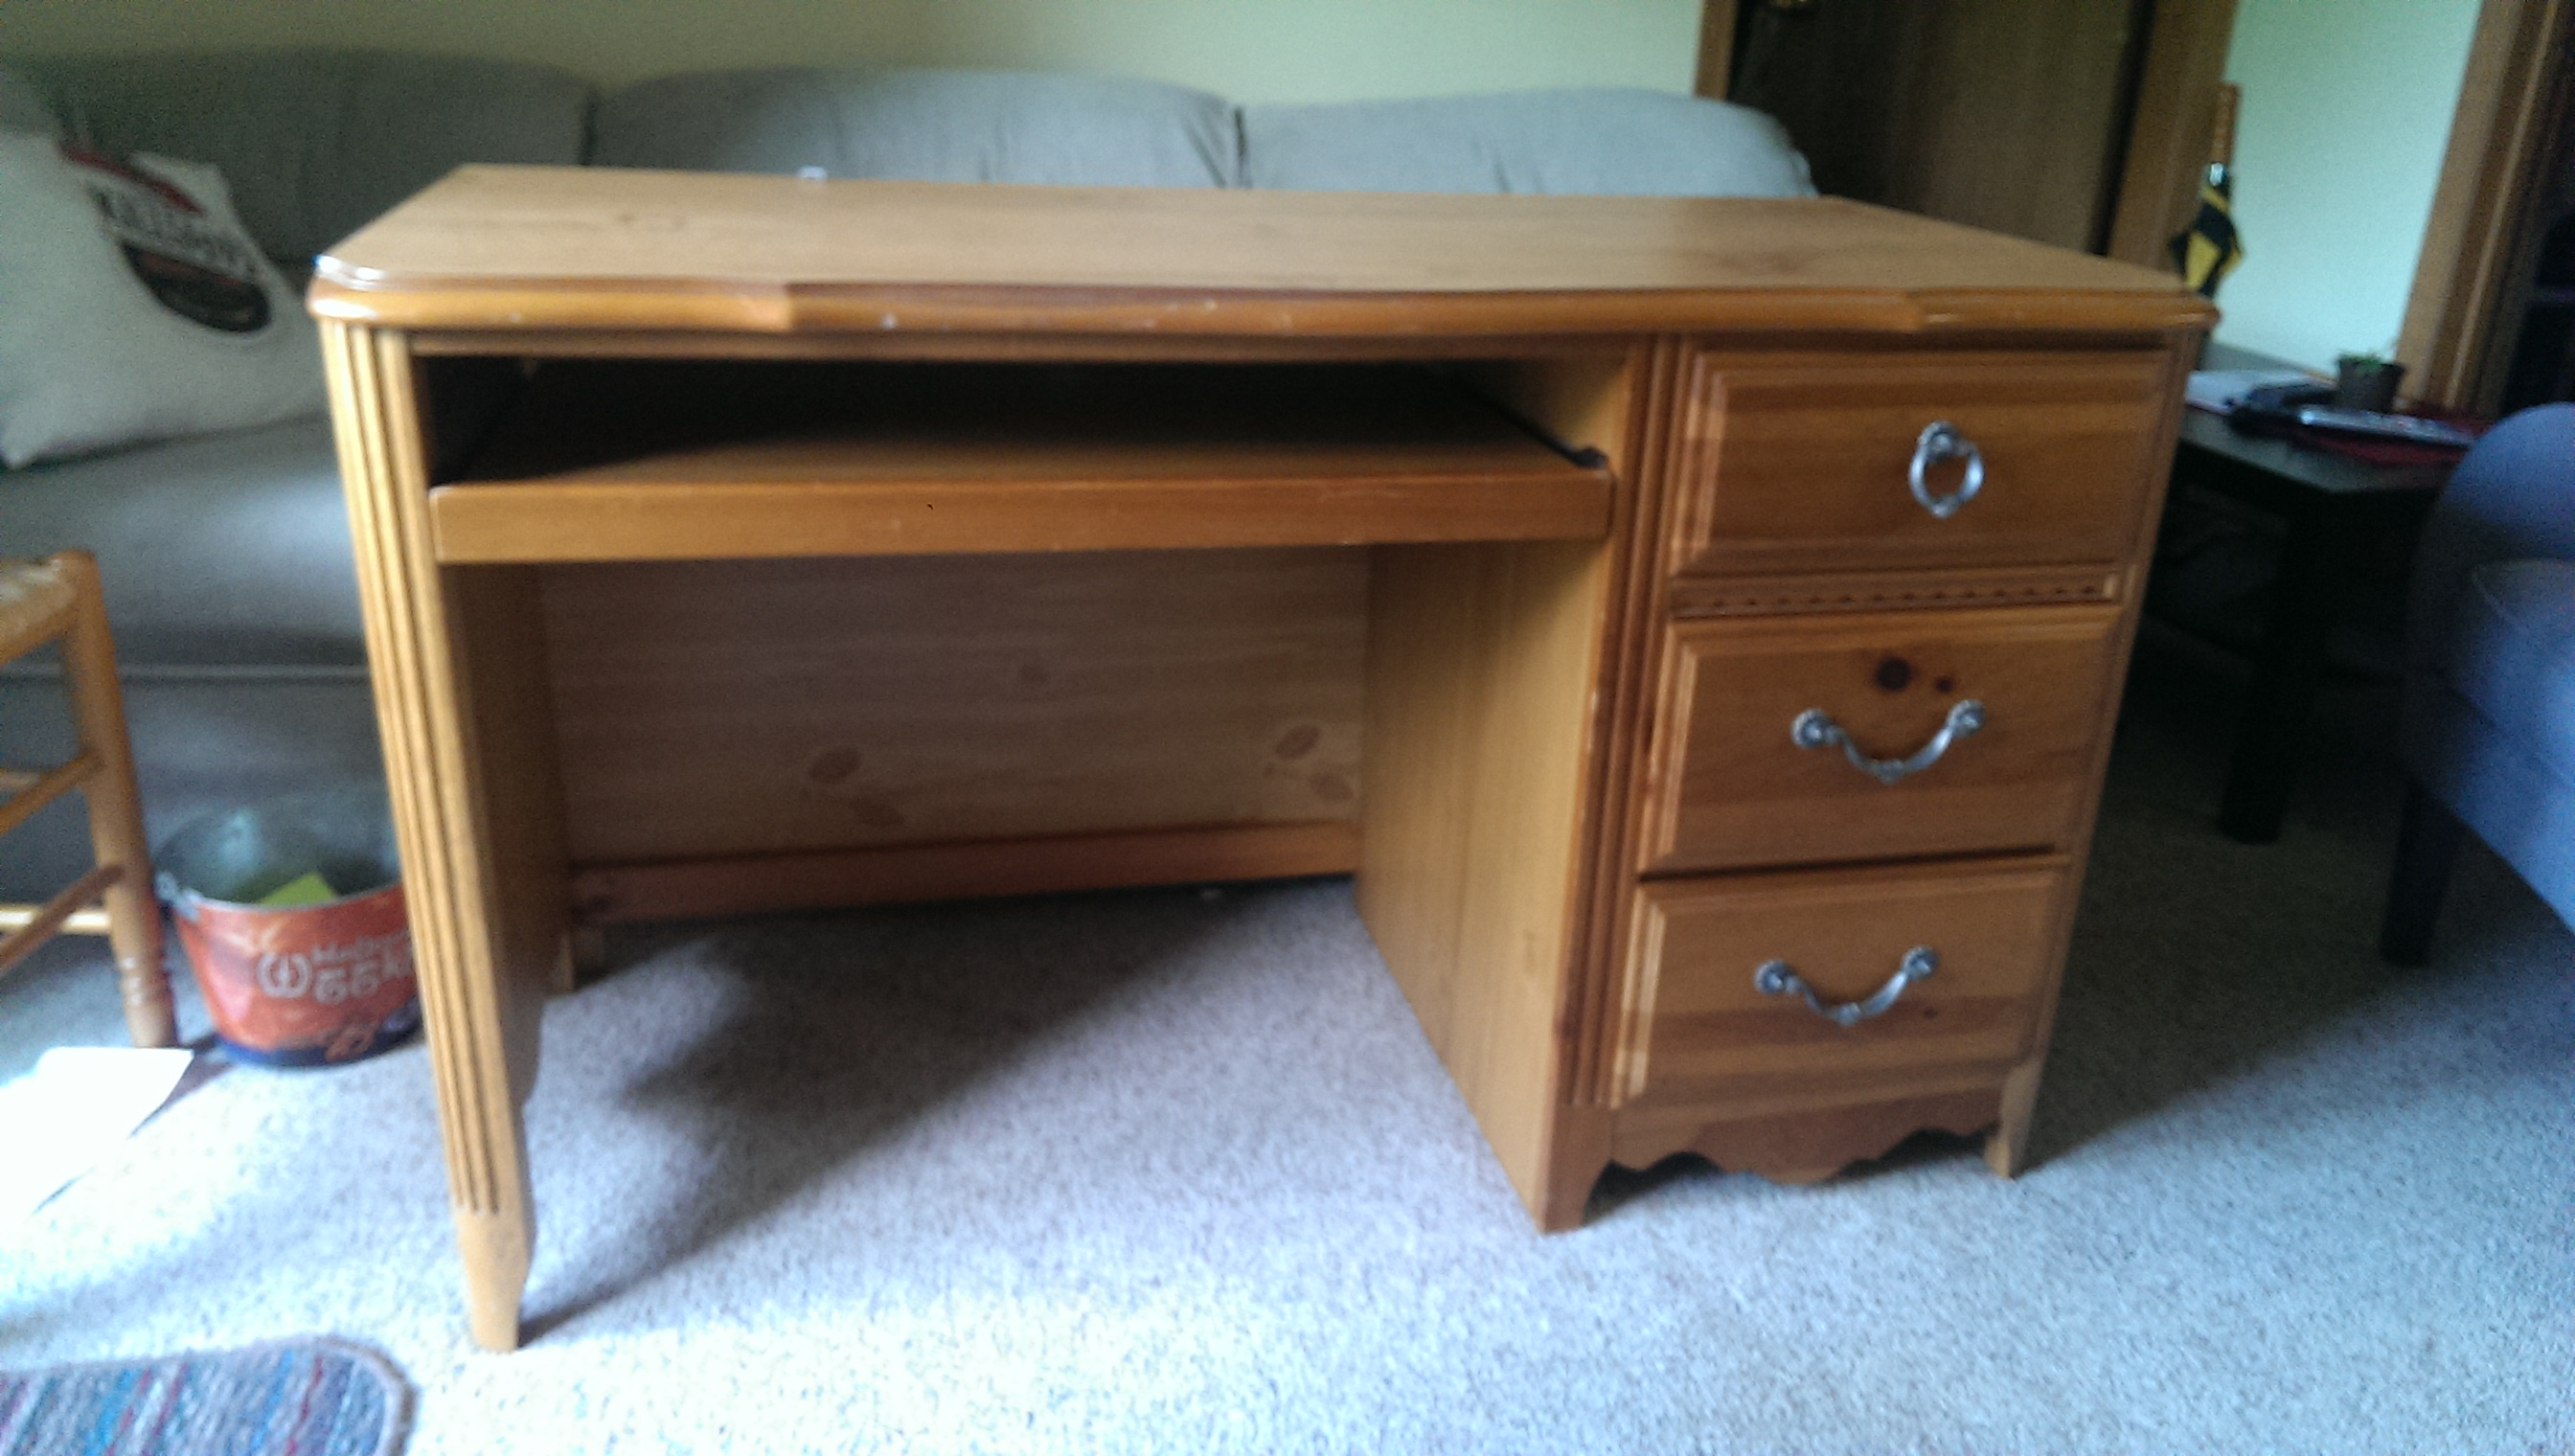 Update an old desk and chair – DIY Guy